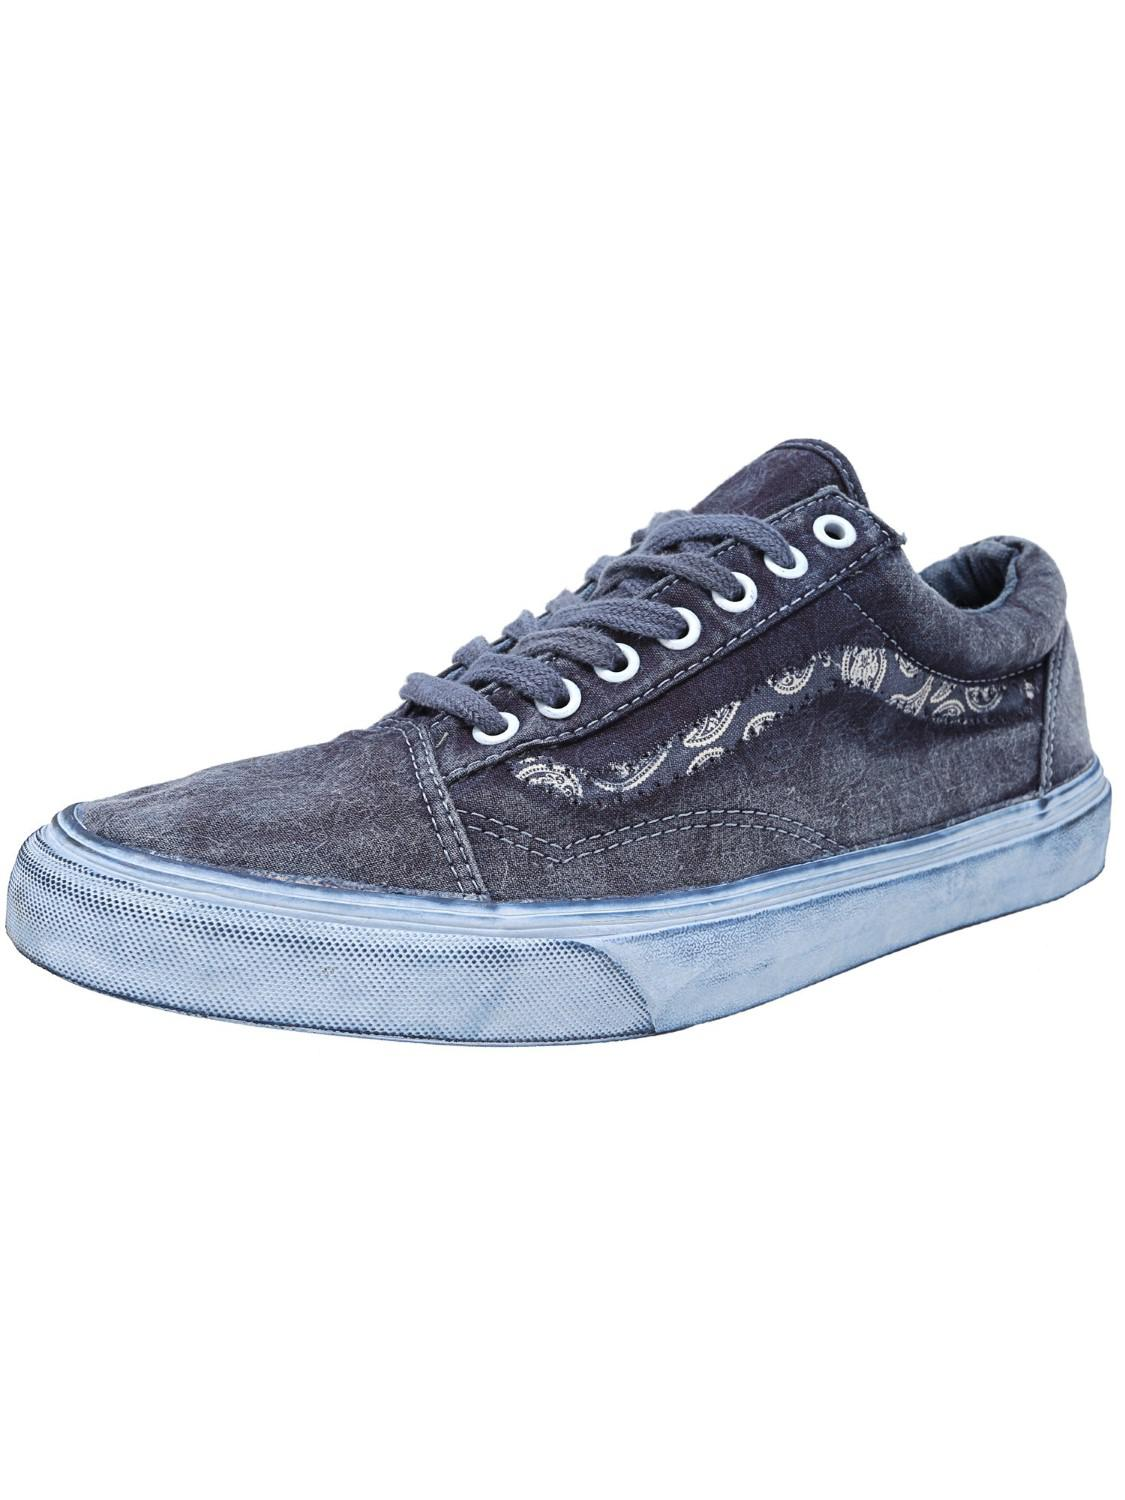 Vans Old Skool Reissue Classics overwash Paisley DRESS Bues MIS. 45